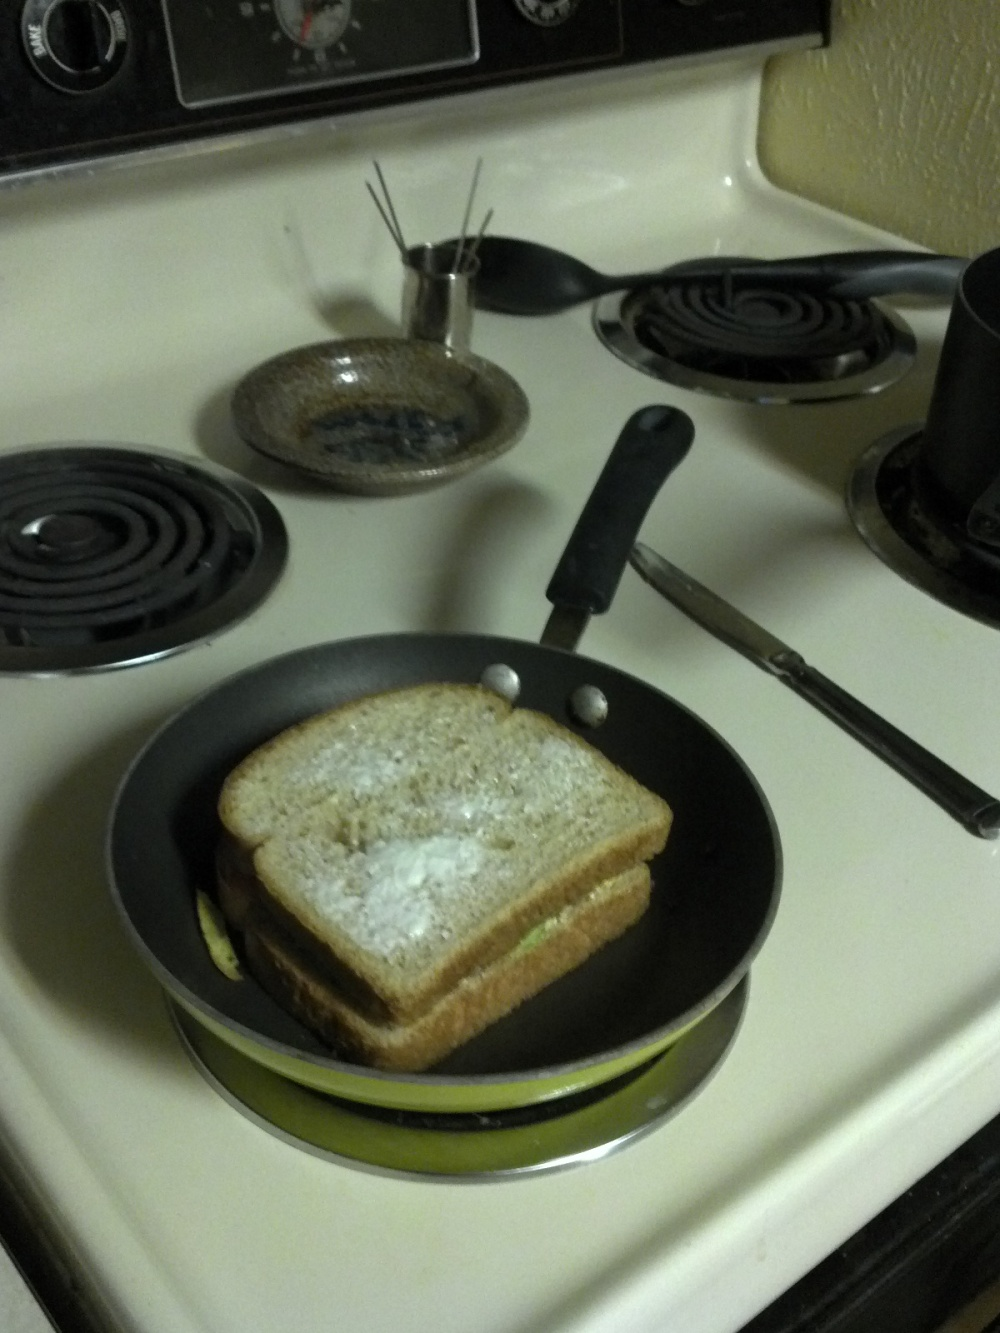 5 pm. Once again I'm cooking; this time grilled cheese with avocado and tomato.